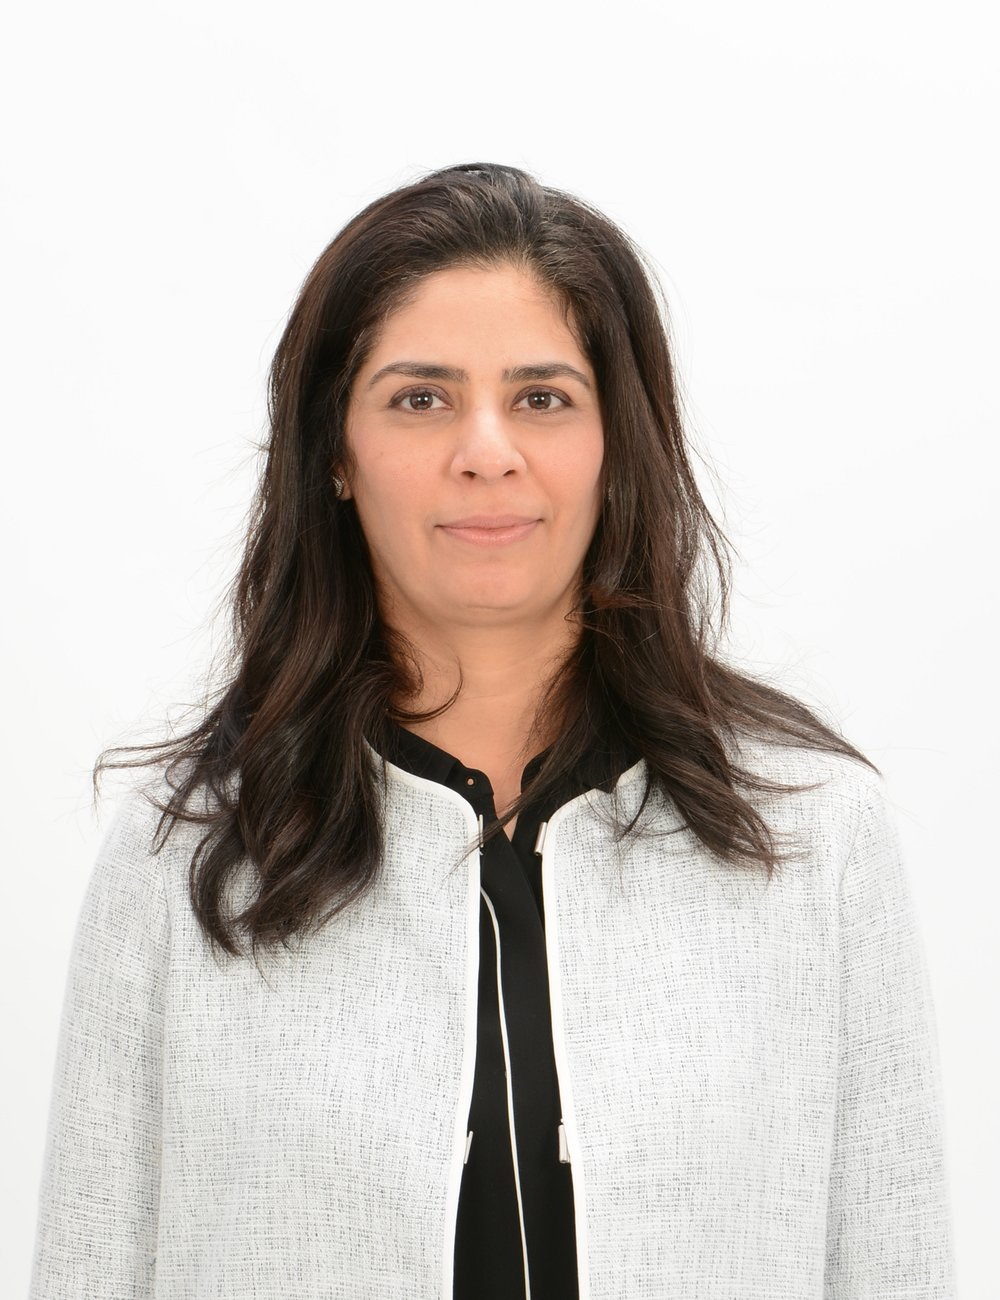 - Dr. Adeela M. Alizai-Ansari is an Ophthalmologist in South Bend, Indiana. She completed her Ophthalmology residency from Temple University, Philadelphia in '10 and Neurology residency from Case Western University in '01. She completed her Neuro-ophthalmology fellowship at University of Michigan, Ann Arbor in '02.Dr Alizai is dual board certified by American Boards of Ophthalmology and Neurology but primarily devotes her time and enjoys Ophthalmic surgeries including caring for surgical and medical eye patients. She sees Neuro-ophthalmology patients as a service to the northwest Indiana region.Dr Alizai received her medical degree from The Aga Khan University Medical College, Karachi, Pakistan in '95 and has been in practice for more than 20 years. IEI accepts several types of health insurances, listed below.She also speaks multiple languages, including Urdu, Pashto and Punjabi. She can also conduct eye exams in spanish.